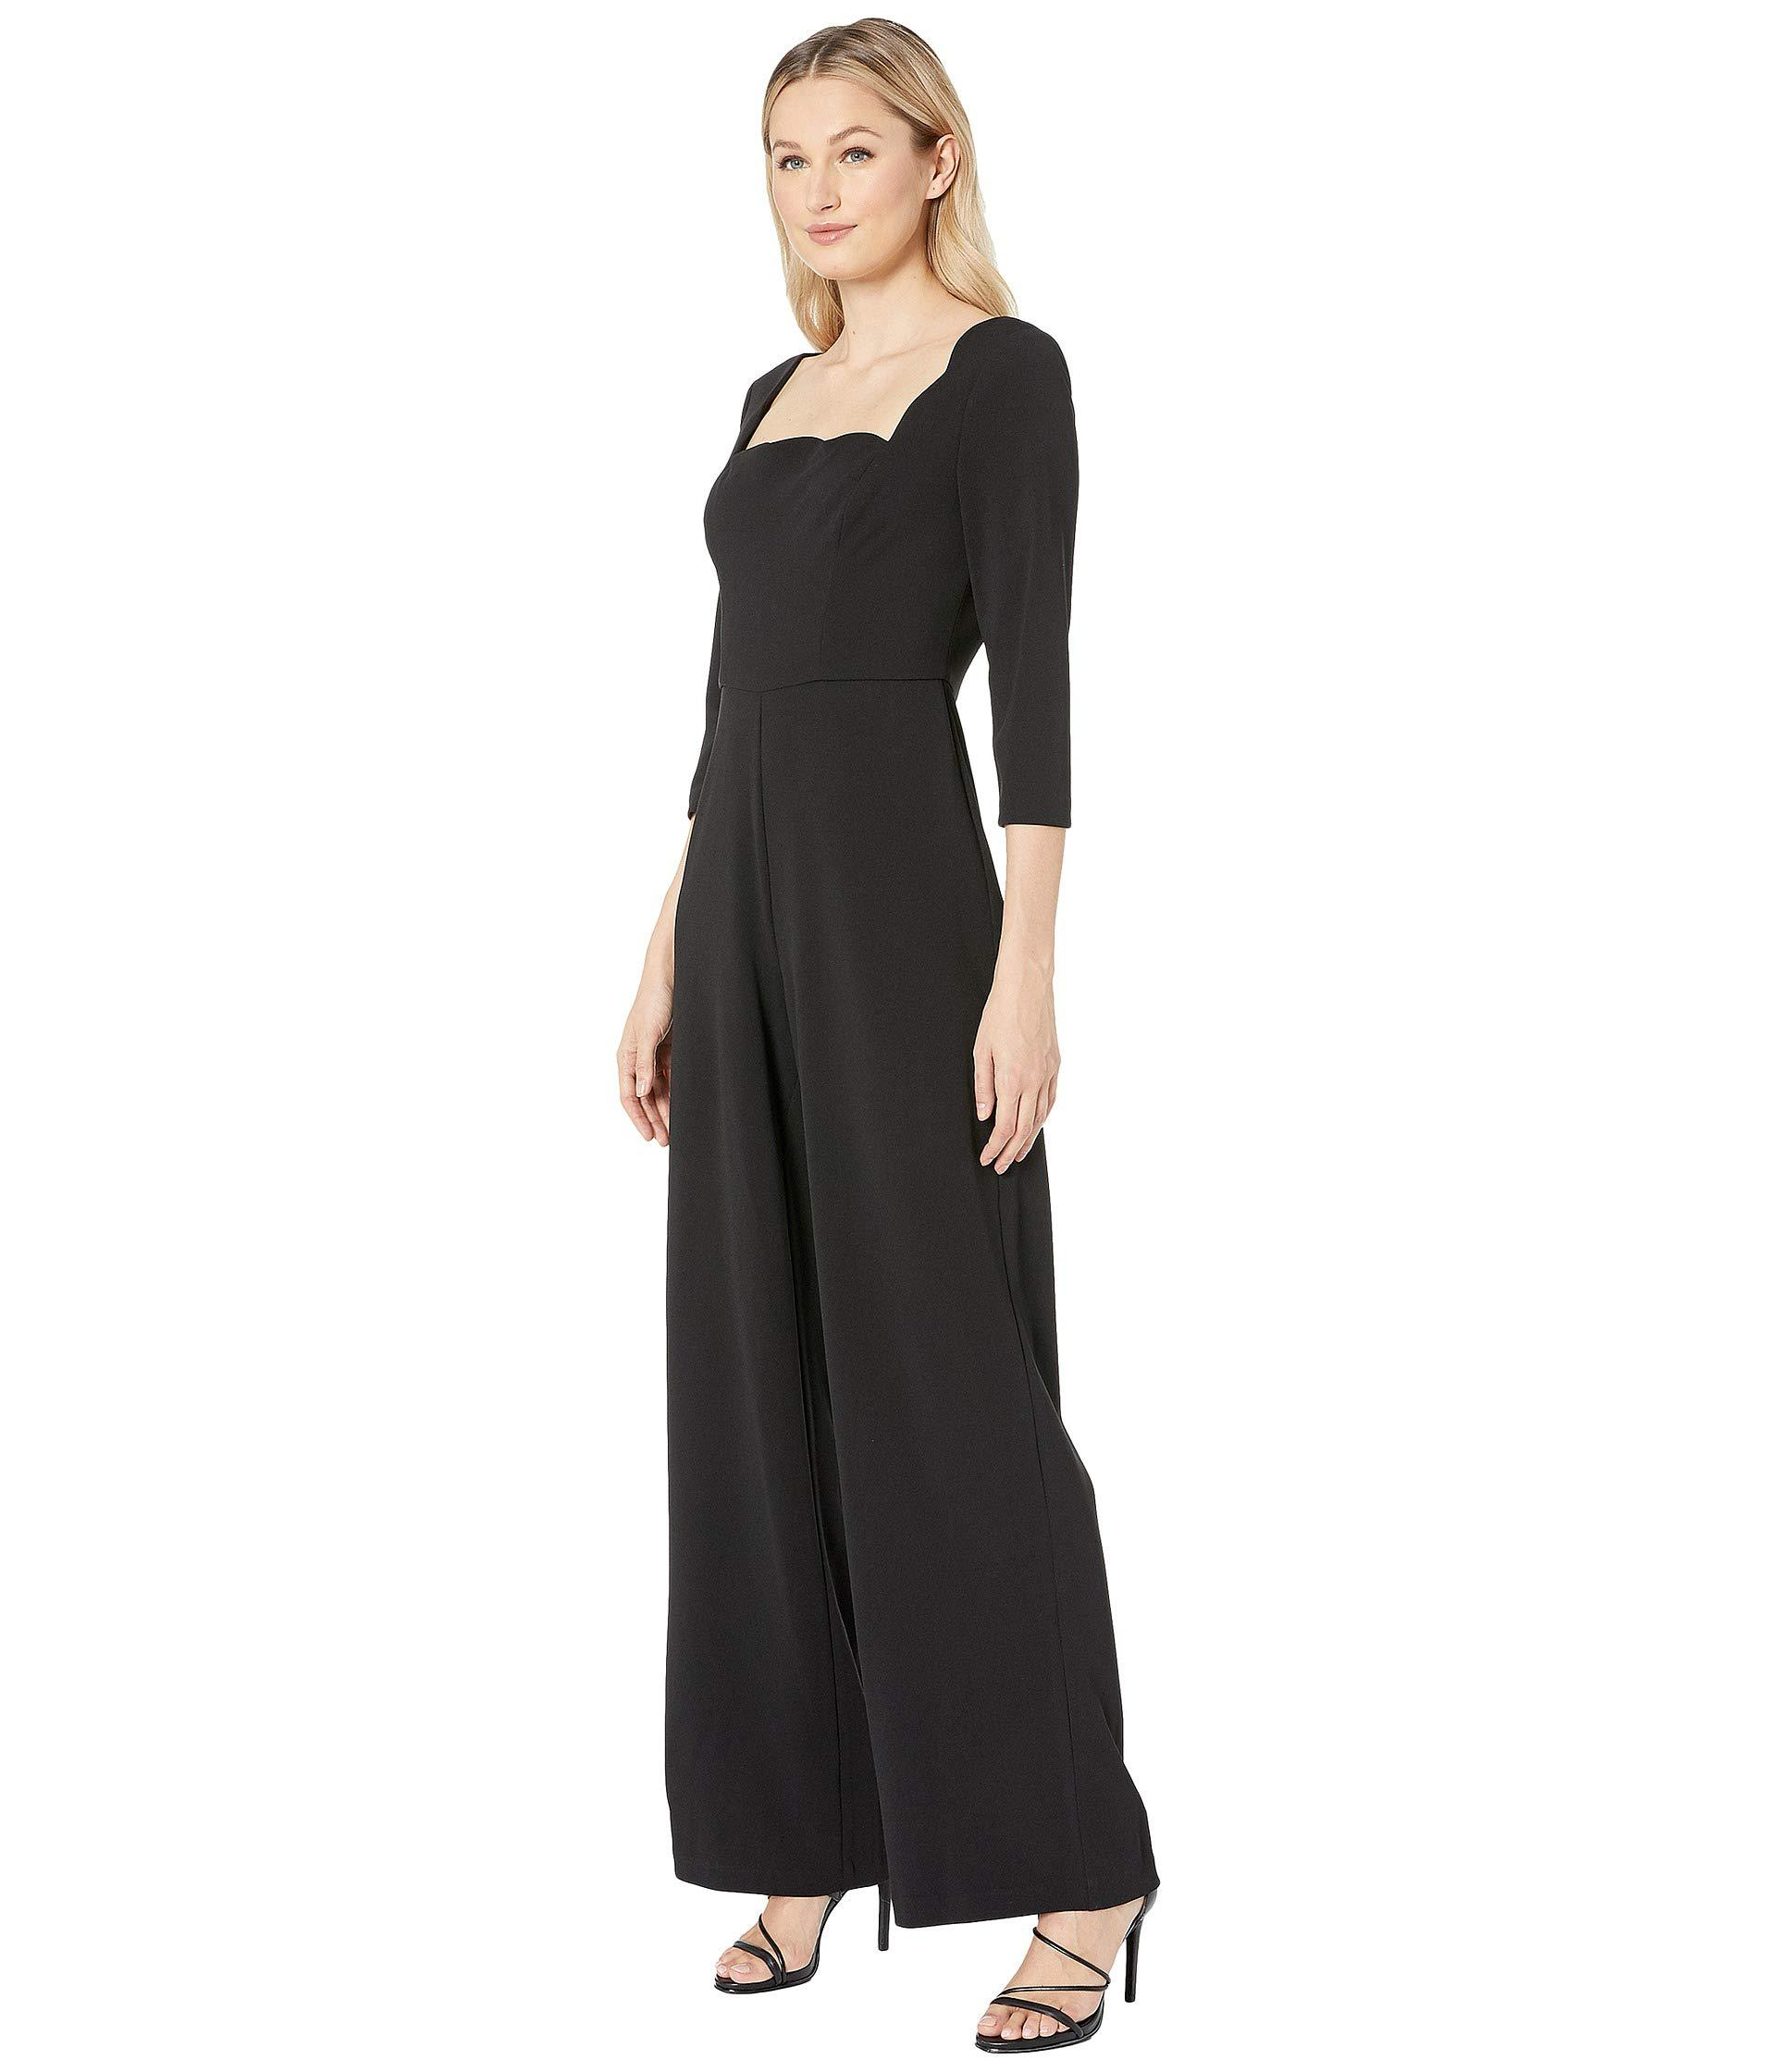 3ead6b2f1cee Lyst - Adrianna Papell Knit Crepe Scalloped Jumpsuit (black) Women s  Jumpsuit   Rompers One Piece in Black